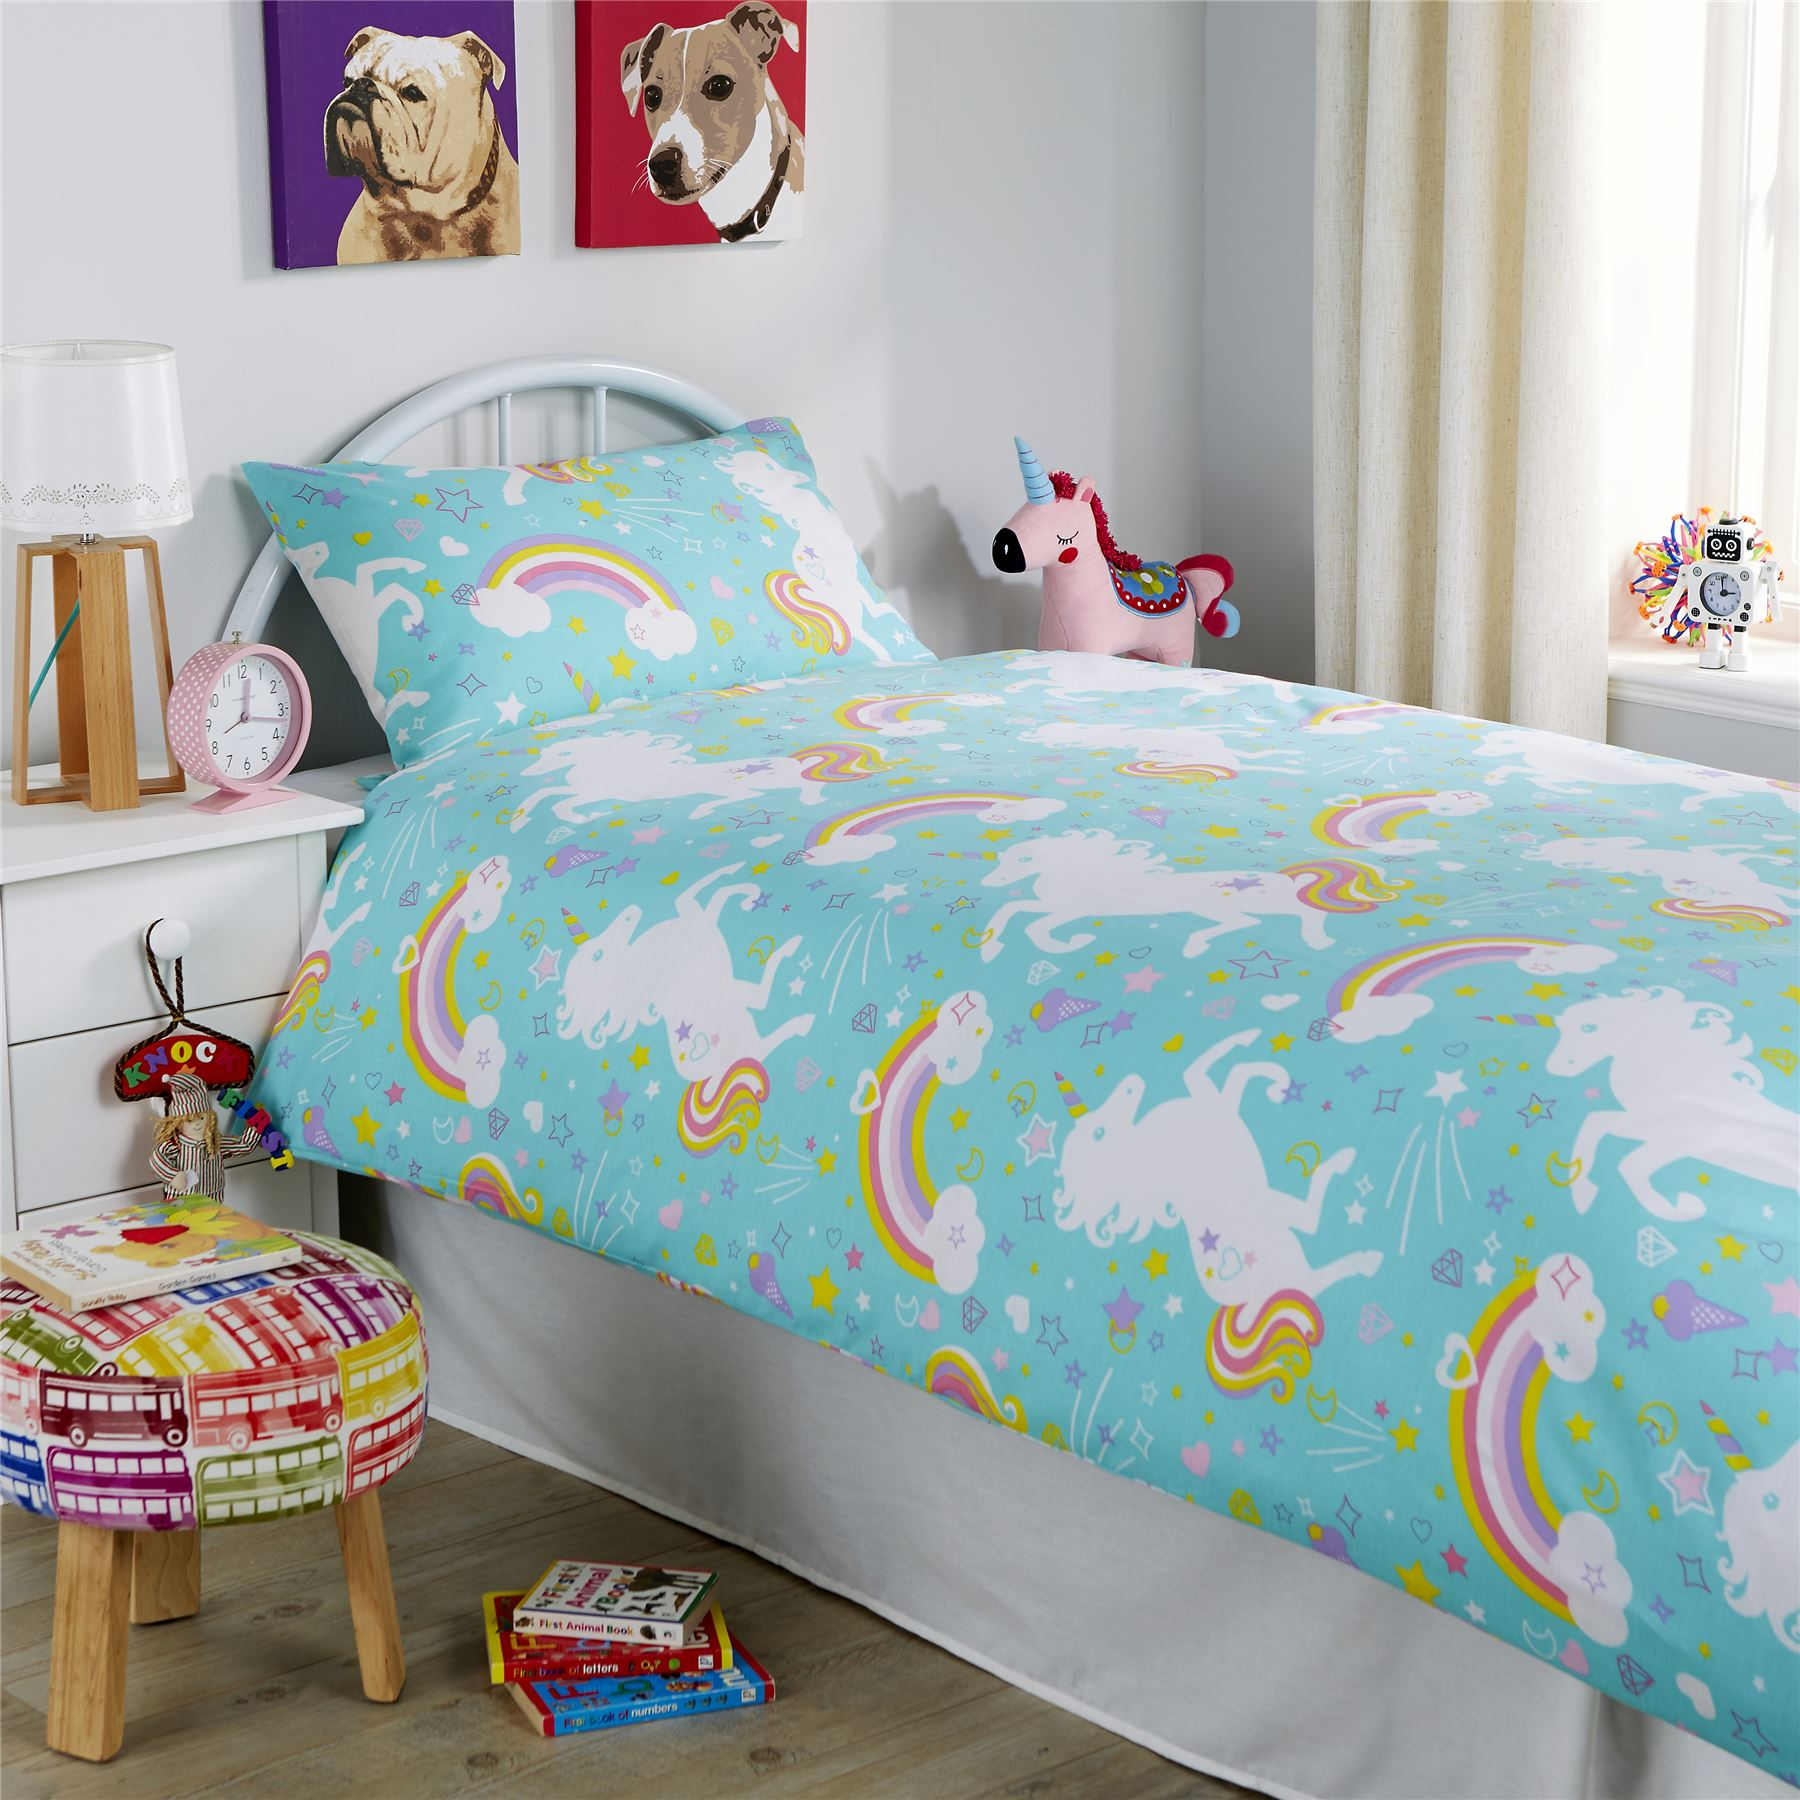 cover unicorn girls your bed inspiration bedroom new army duvet to inside residence double boys bedding amazing sets applied kids birds dinosaur